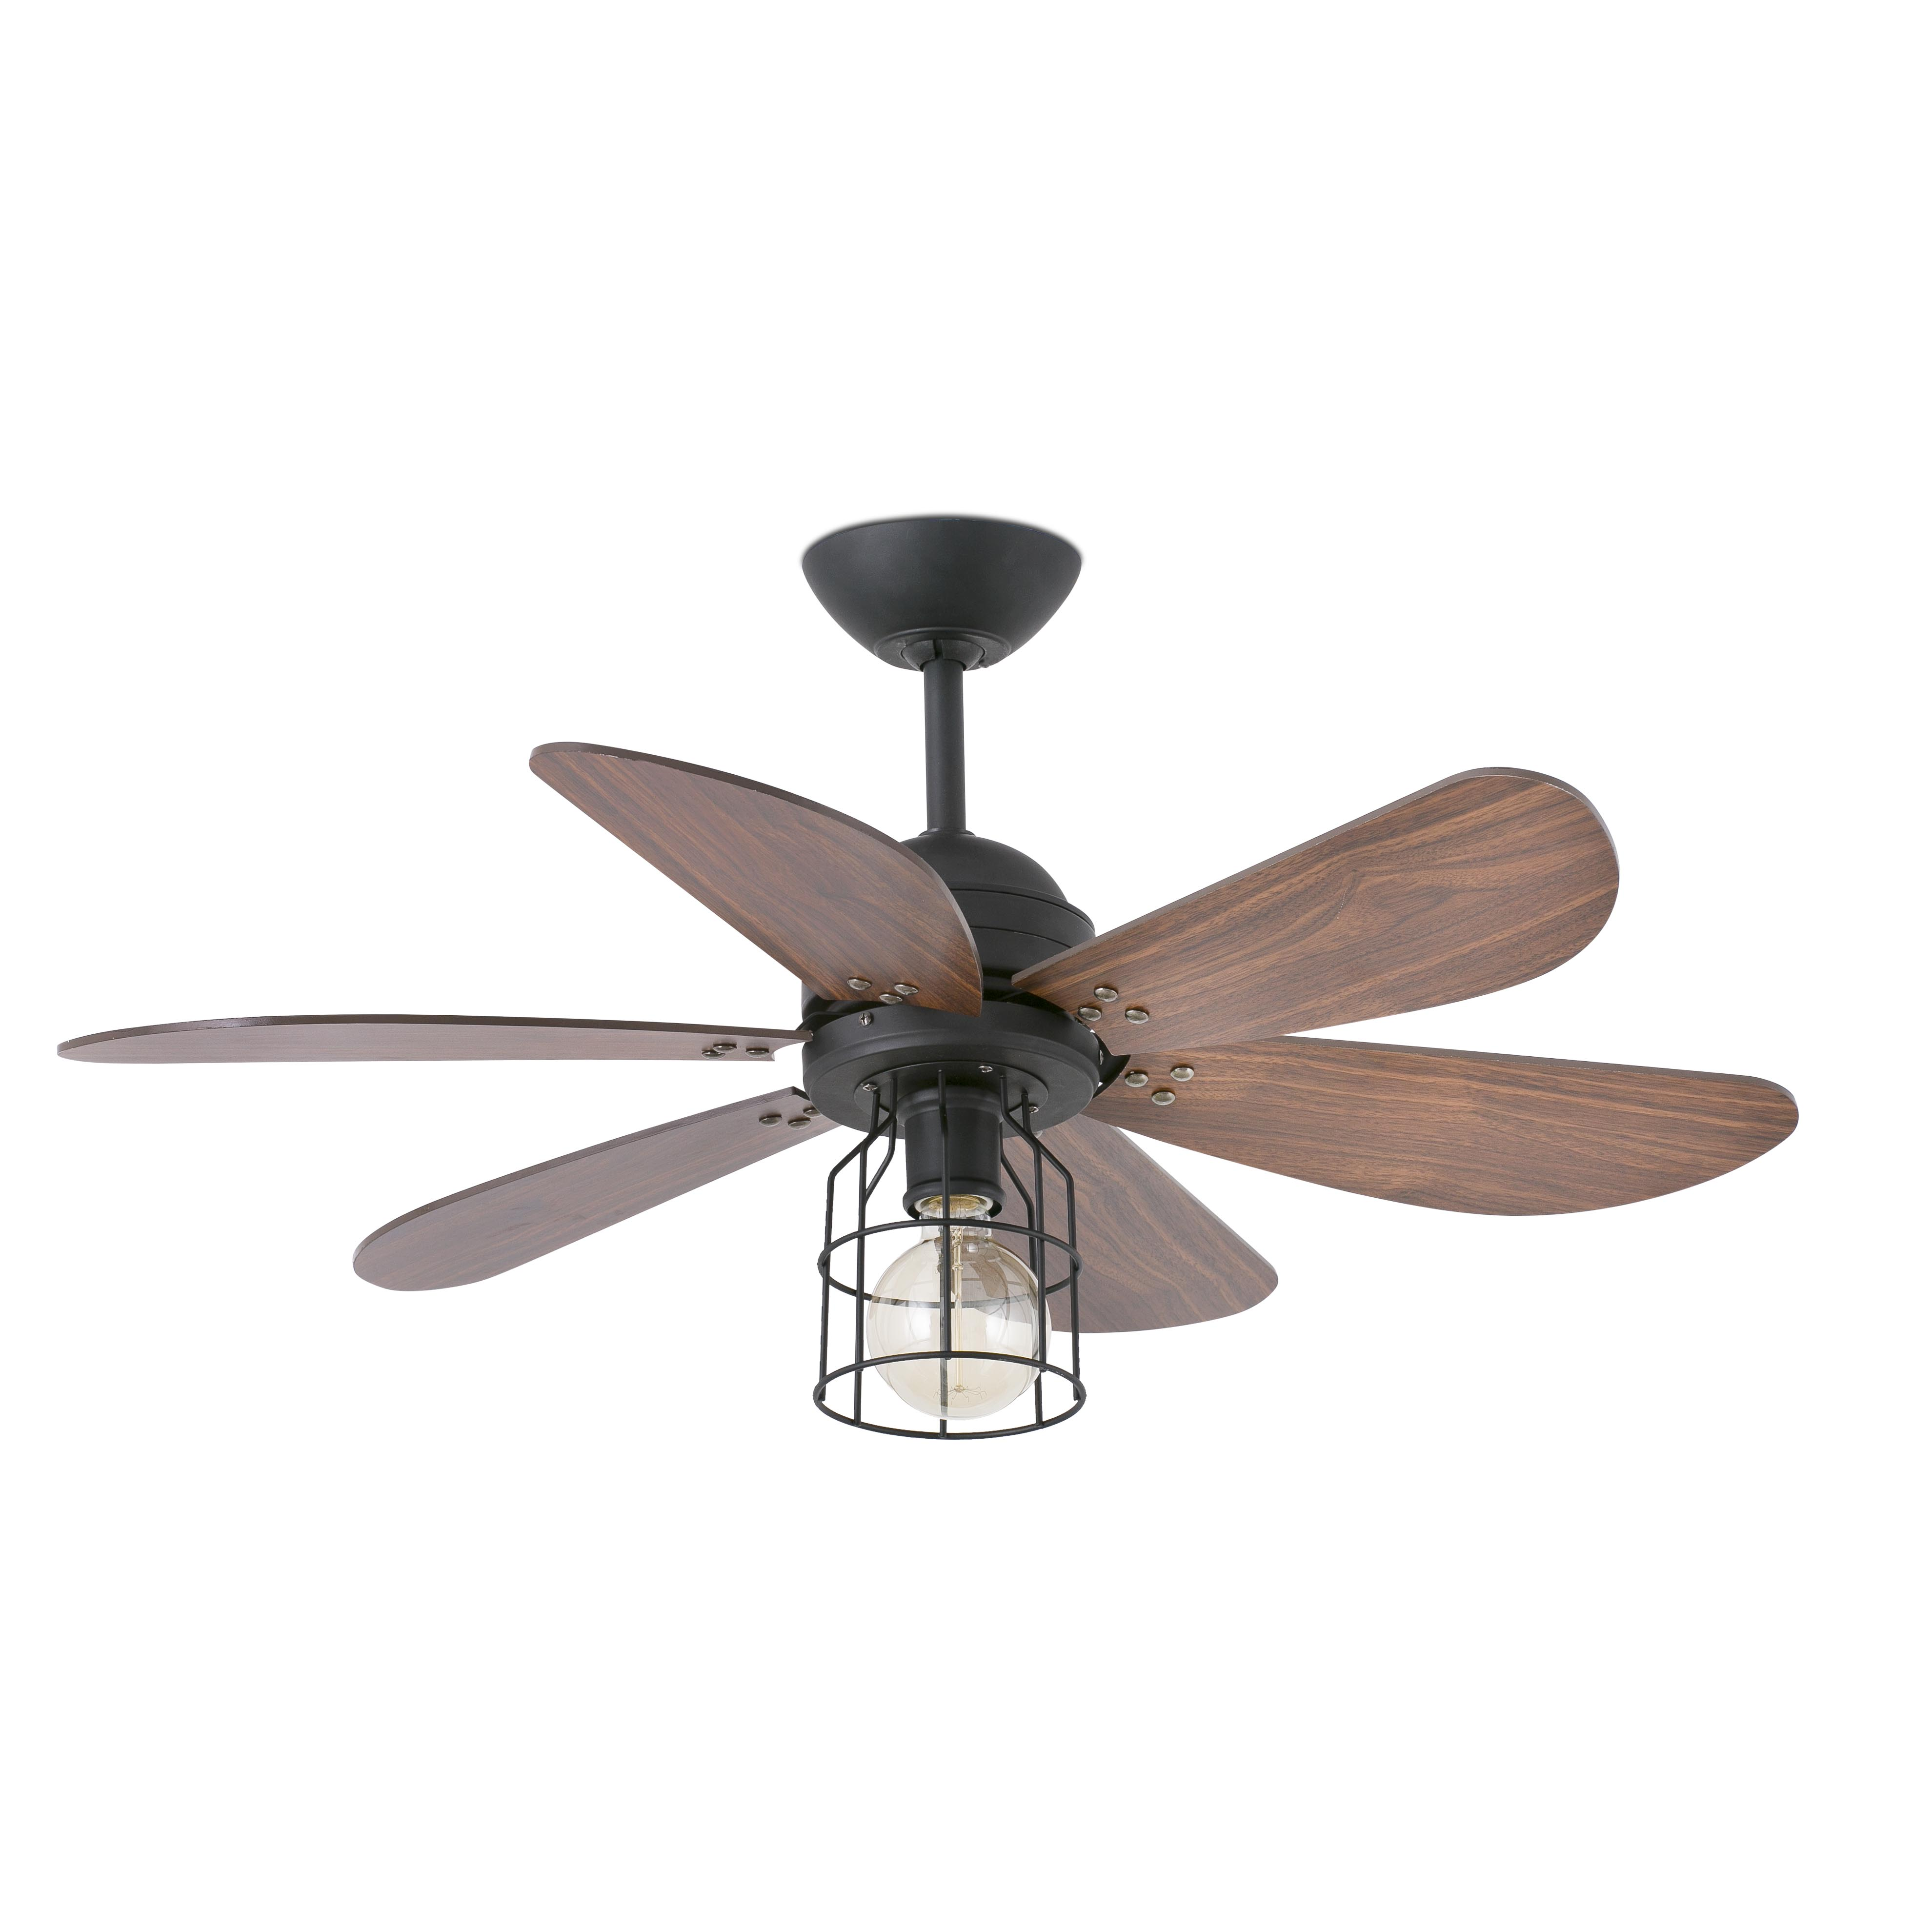 Faro ceiling fan chicago 915 cm 36 with lighting ceiling fans faro ceiling fan chicago 915 cm 36 with lighting aloadofball Image collections